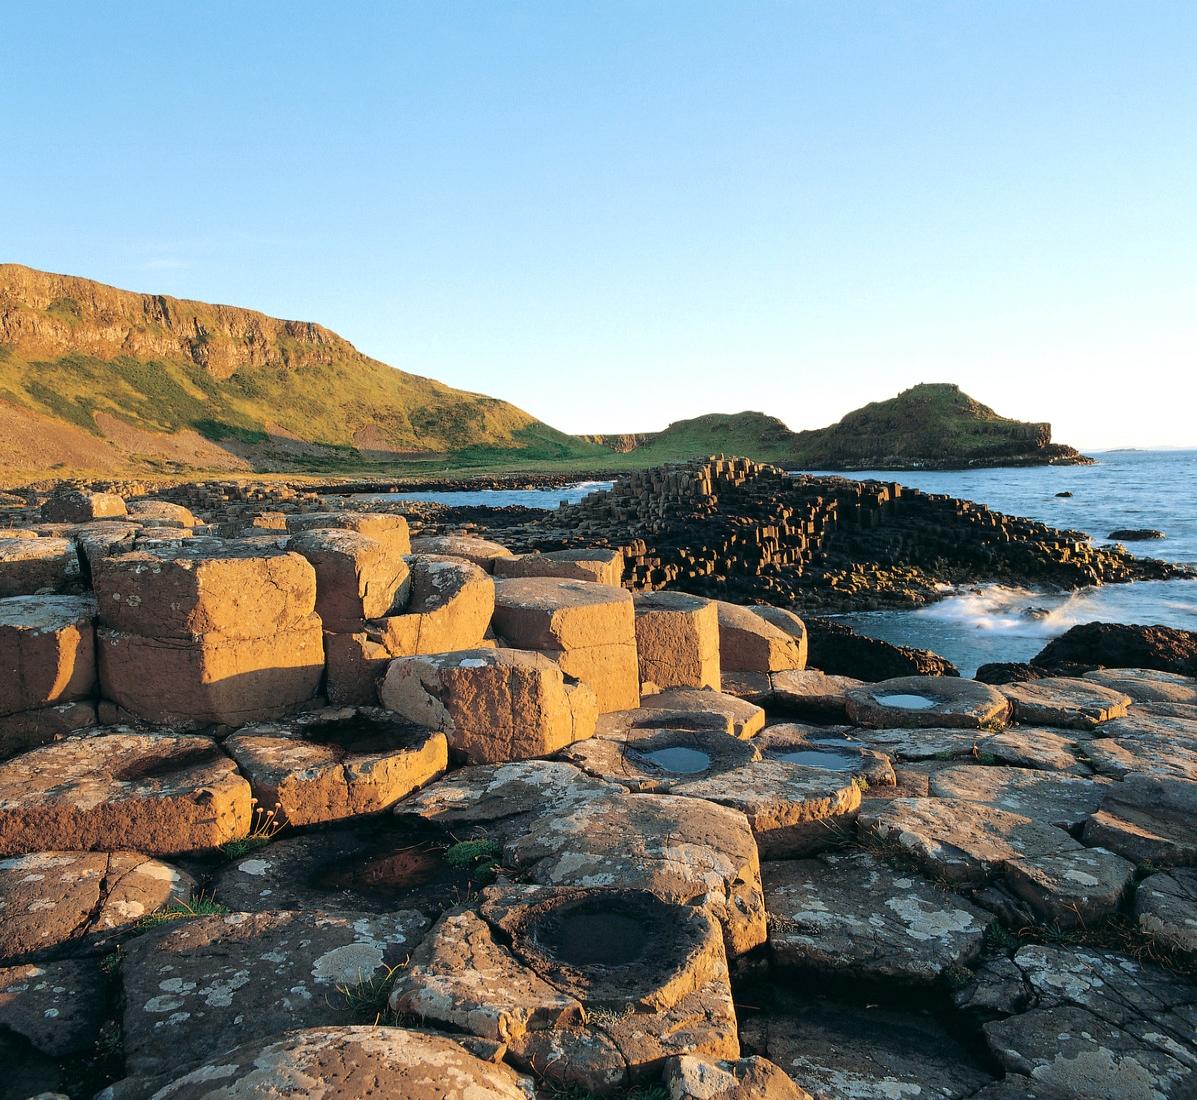 """The Giants Causeway - A world famous UNESCO listed """"world heritage site"""" Magical and Mysterious and a geological wander.According to legend, the columns are the remains of a causeway built by a giant."""